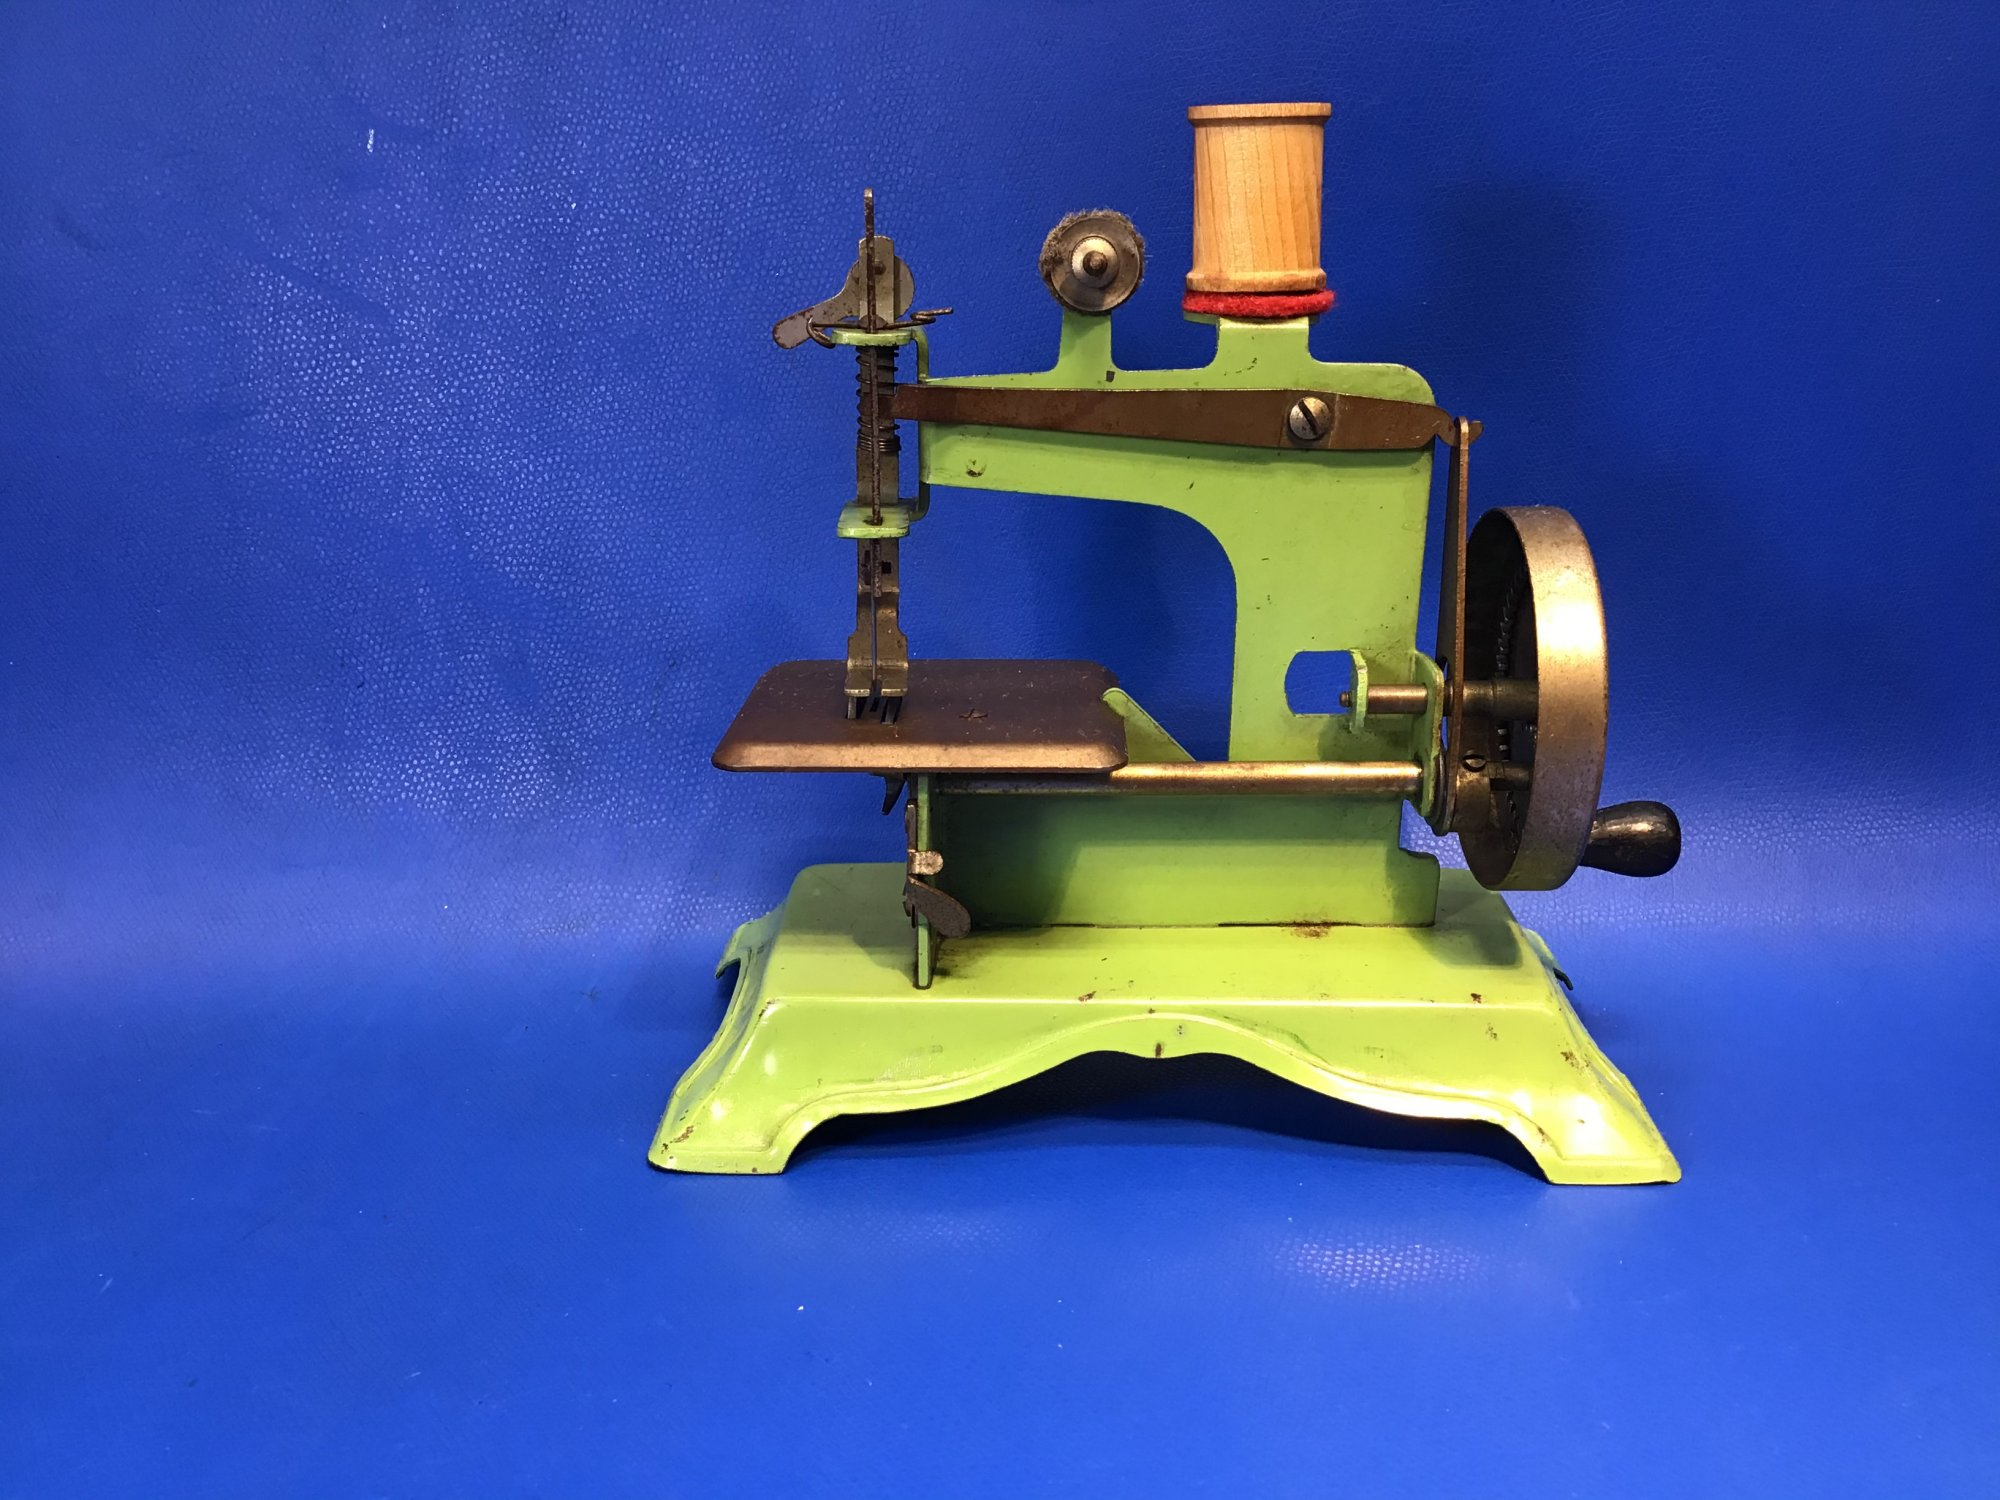 Green Toy Sewing Machine